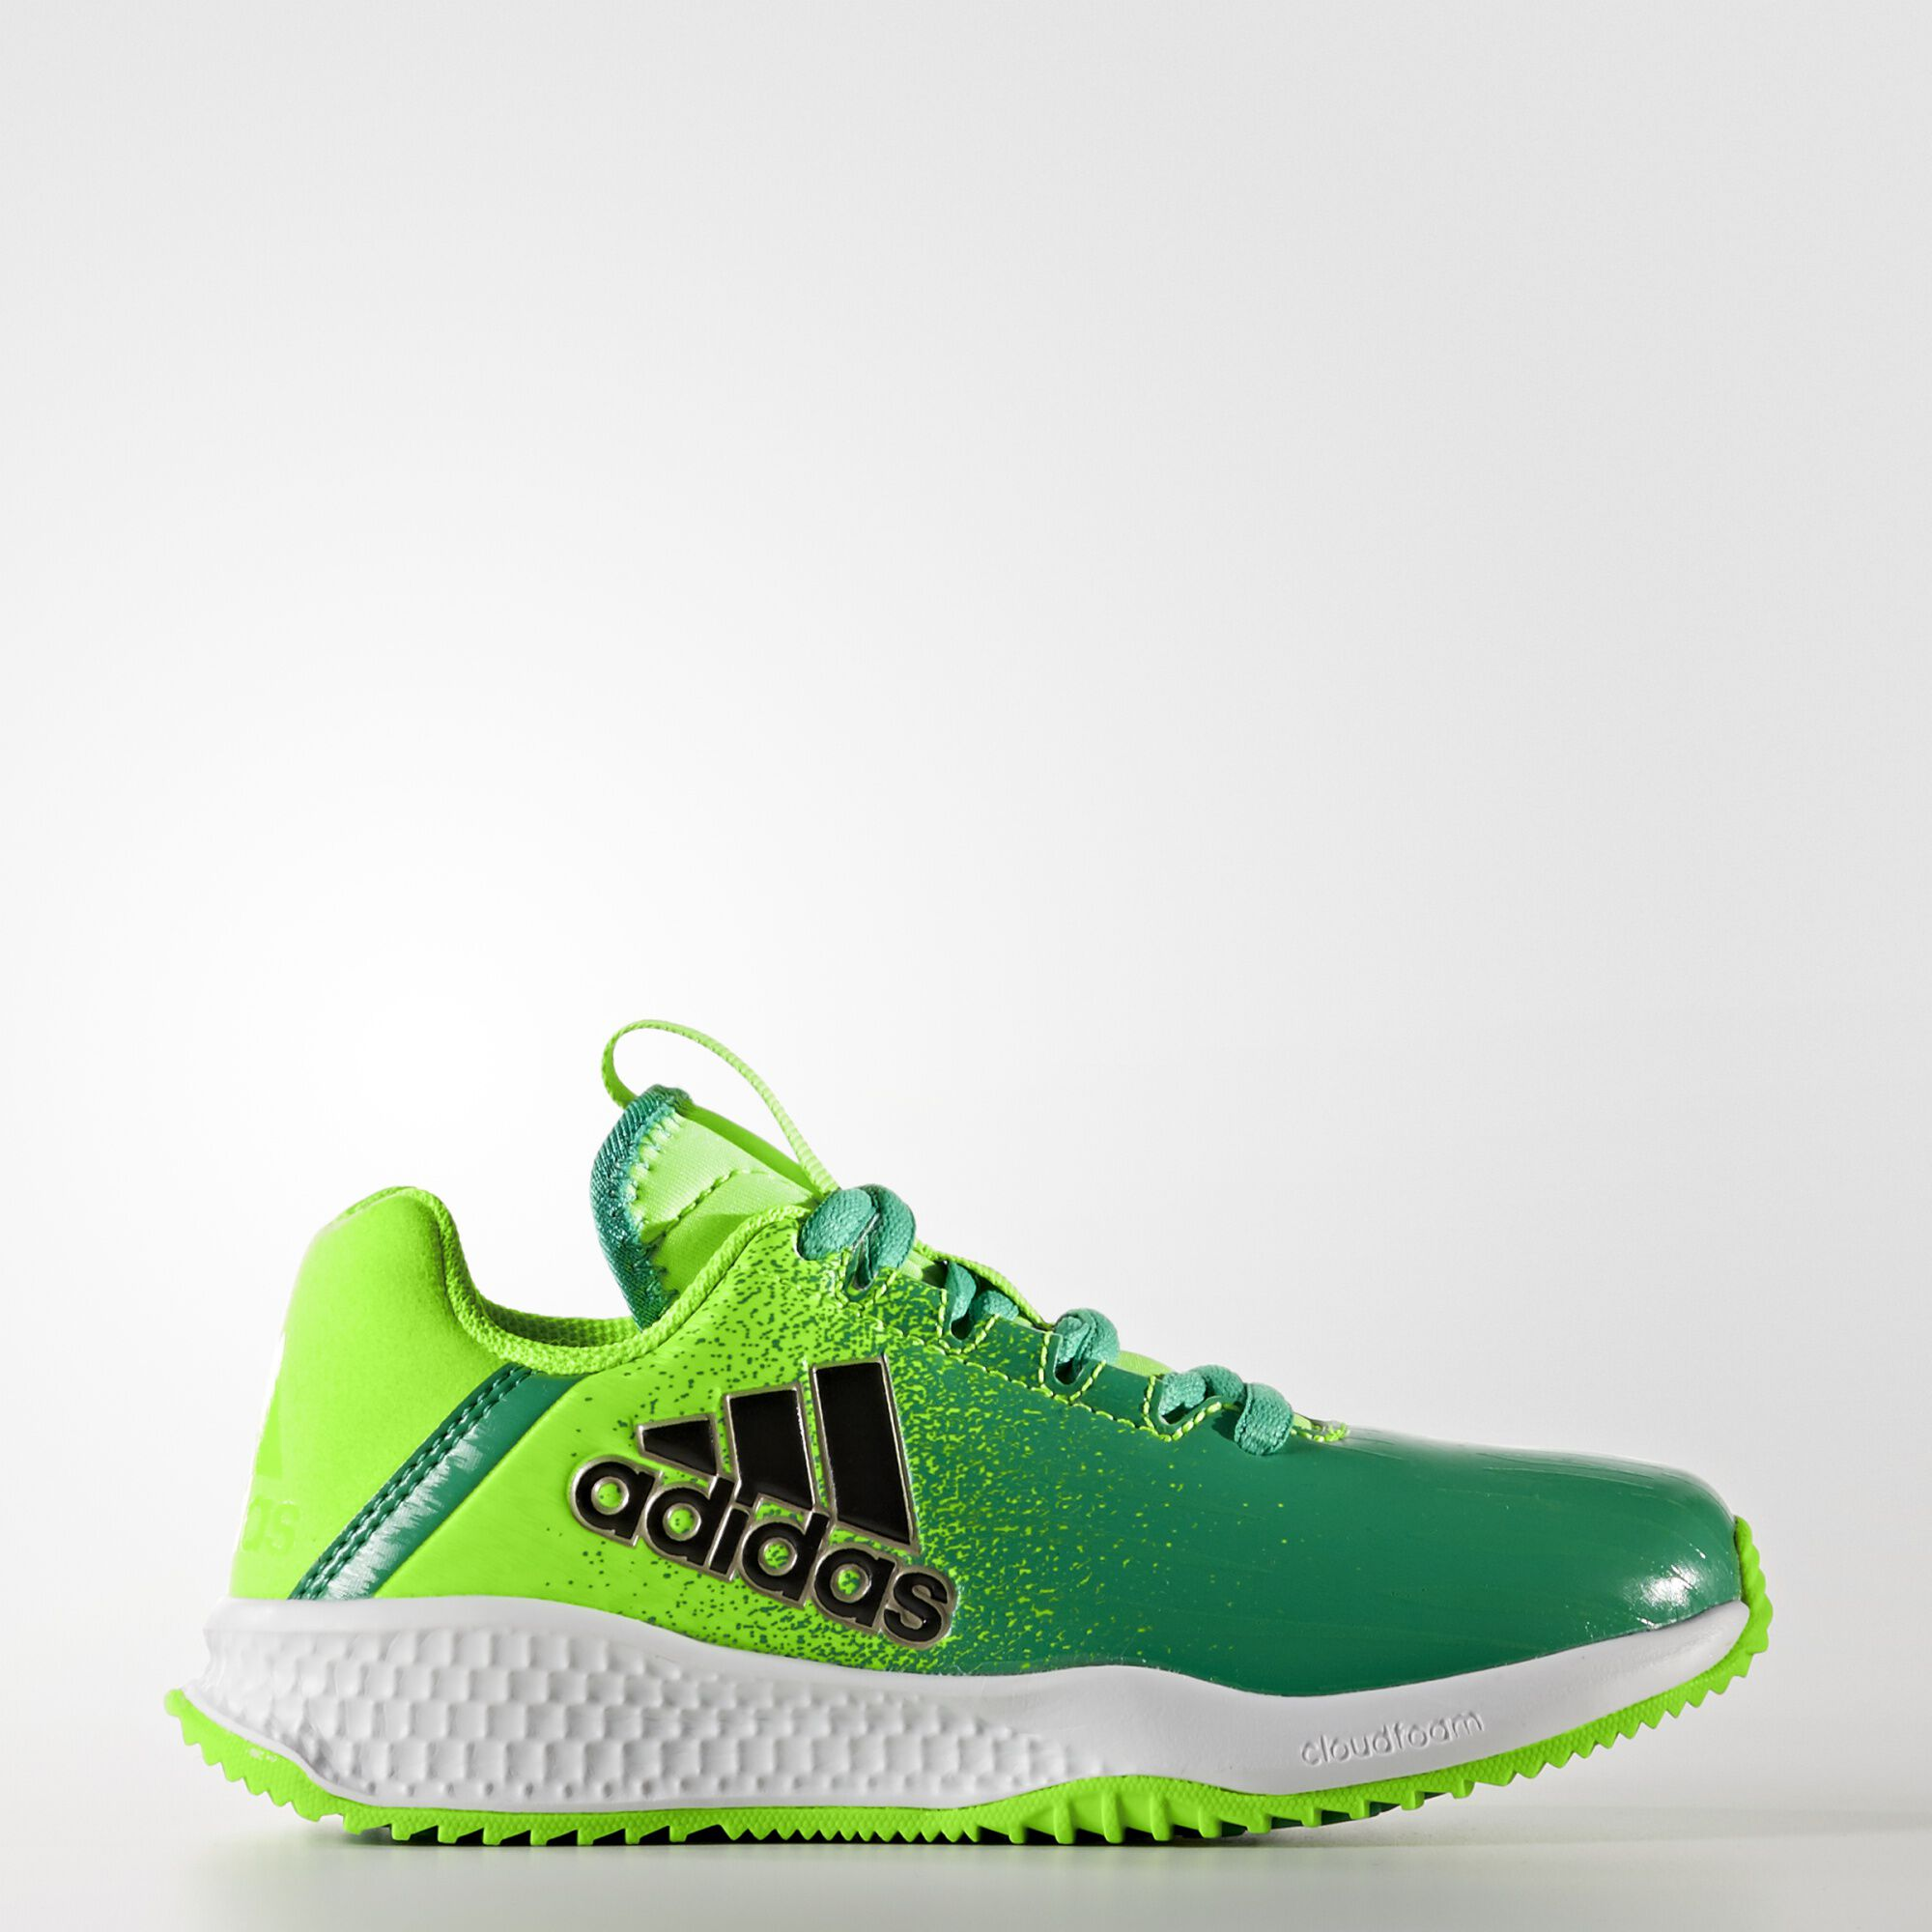 Buy adidas slippers kids price   OFF30% Discounted c52f5271e511f